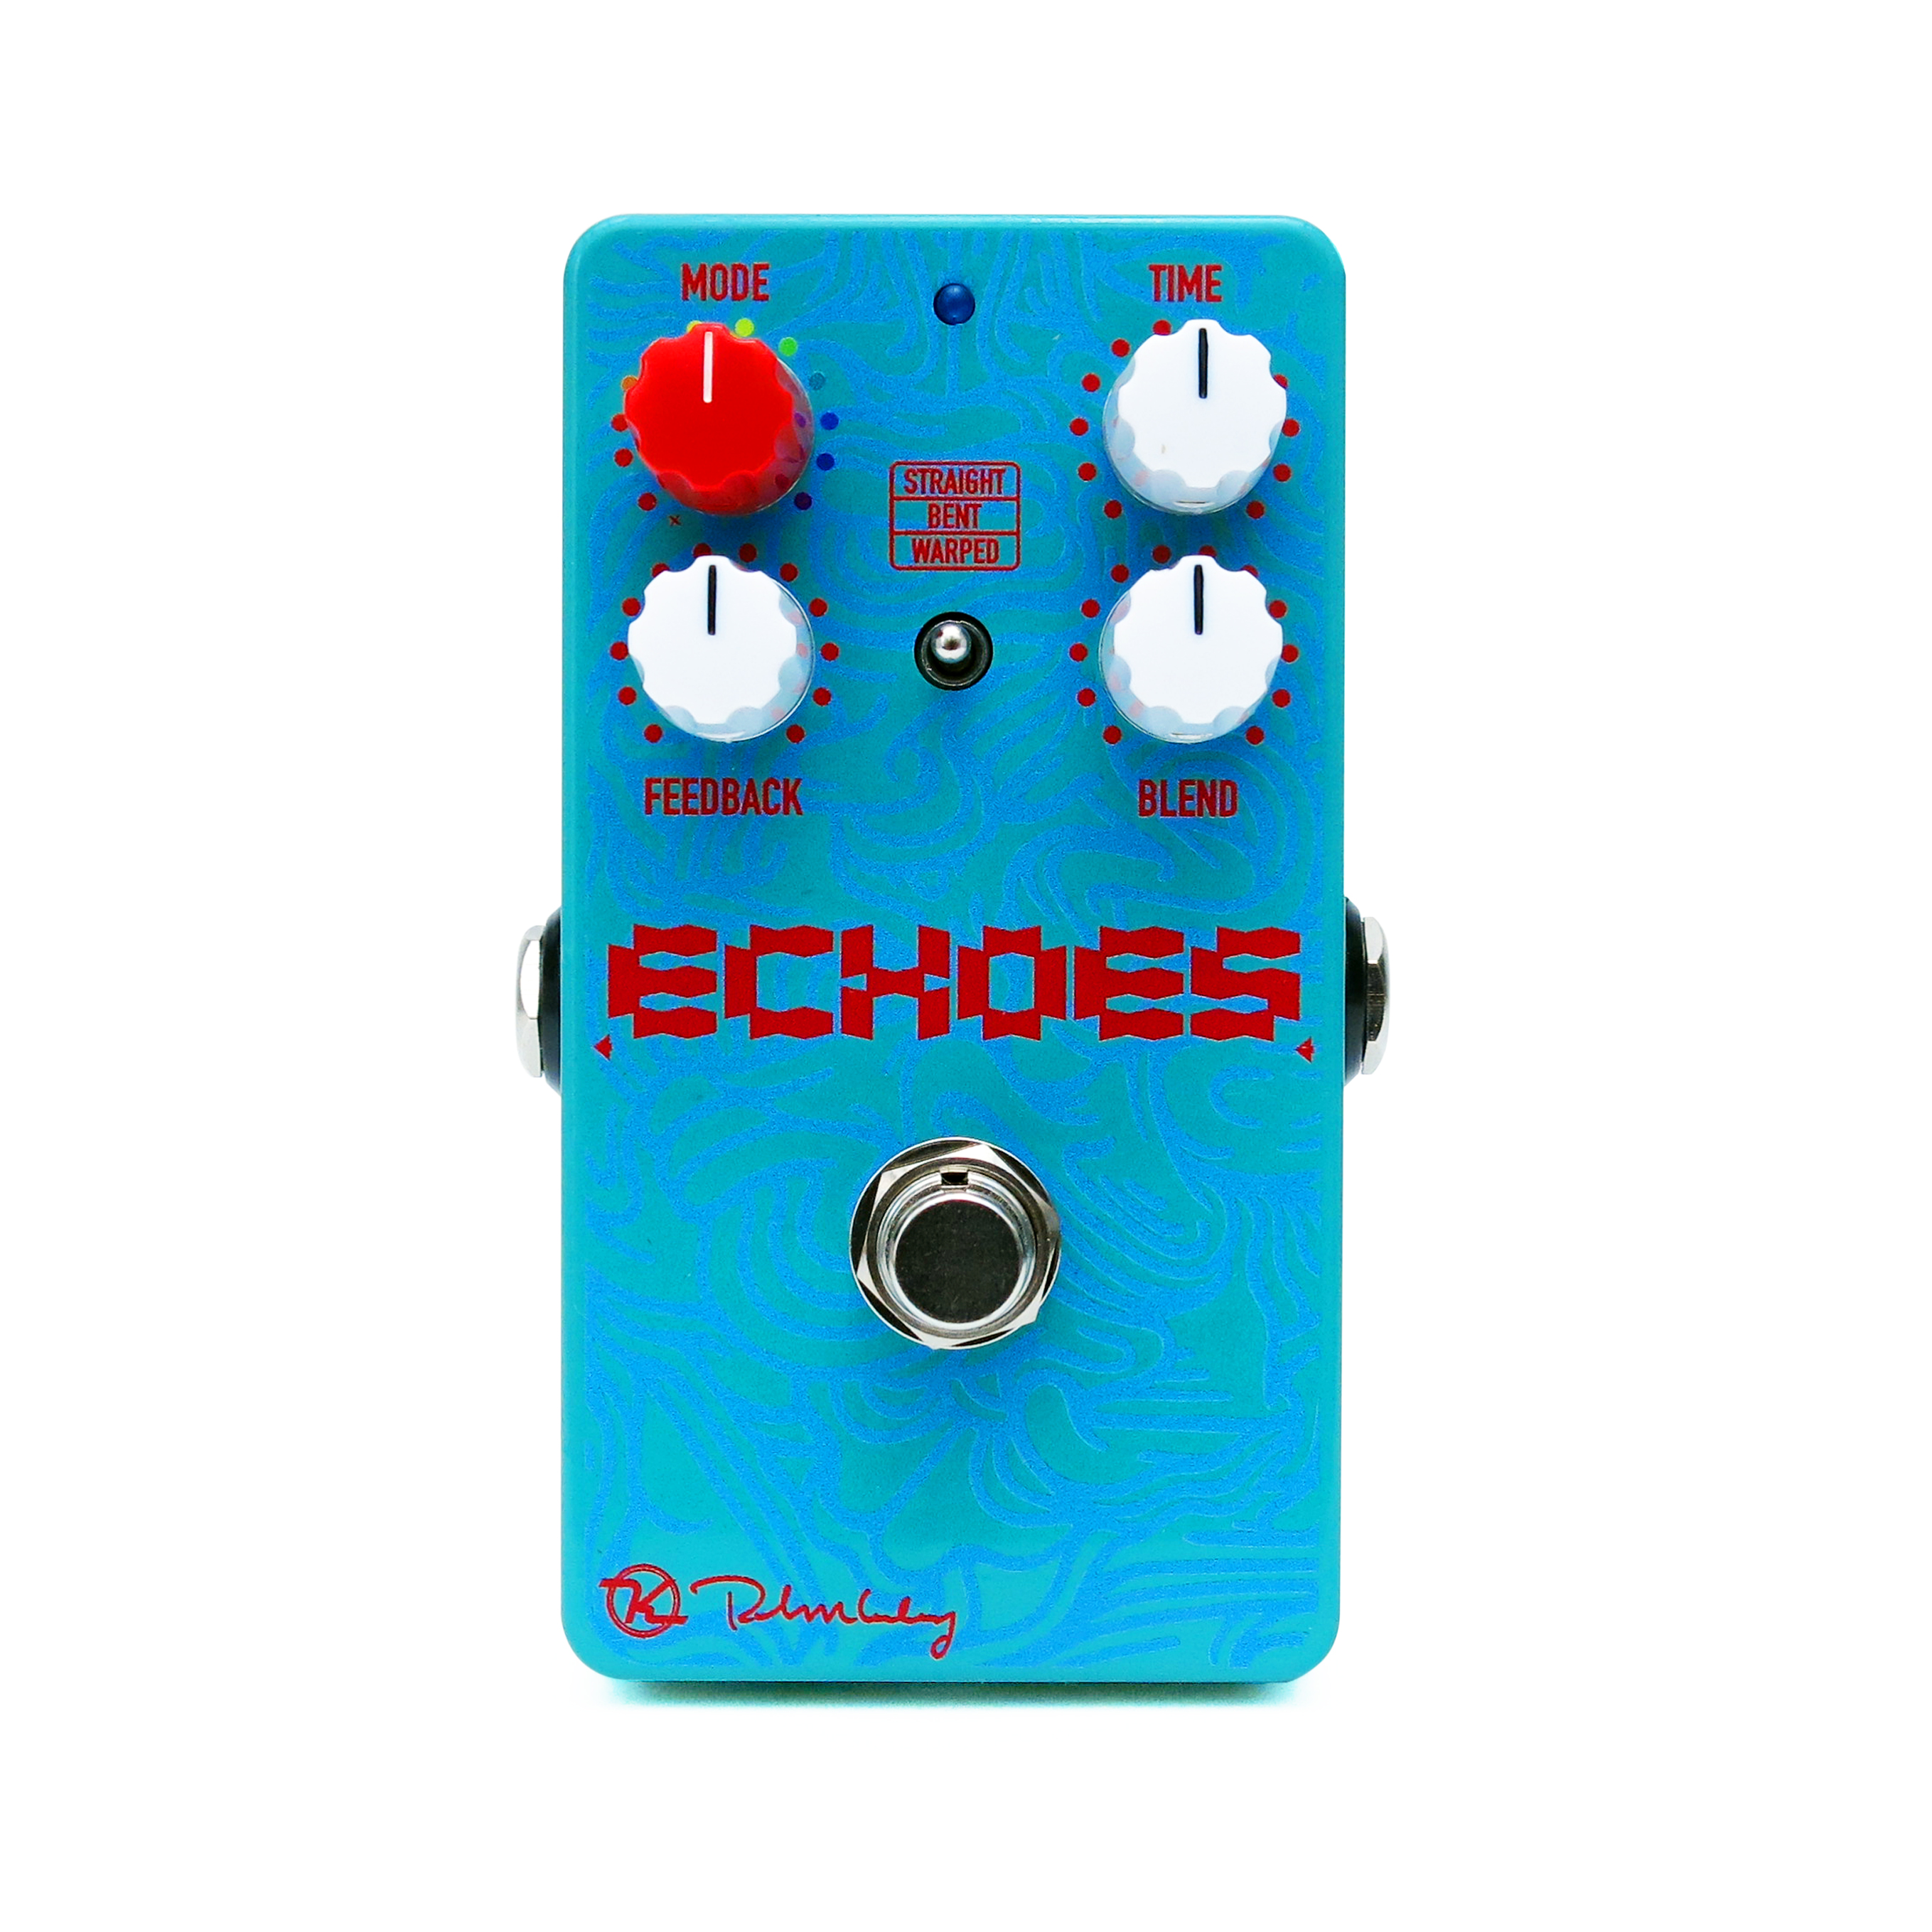 Echoes-Delay-Face-White-Keeley.jpg